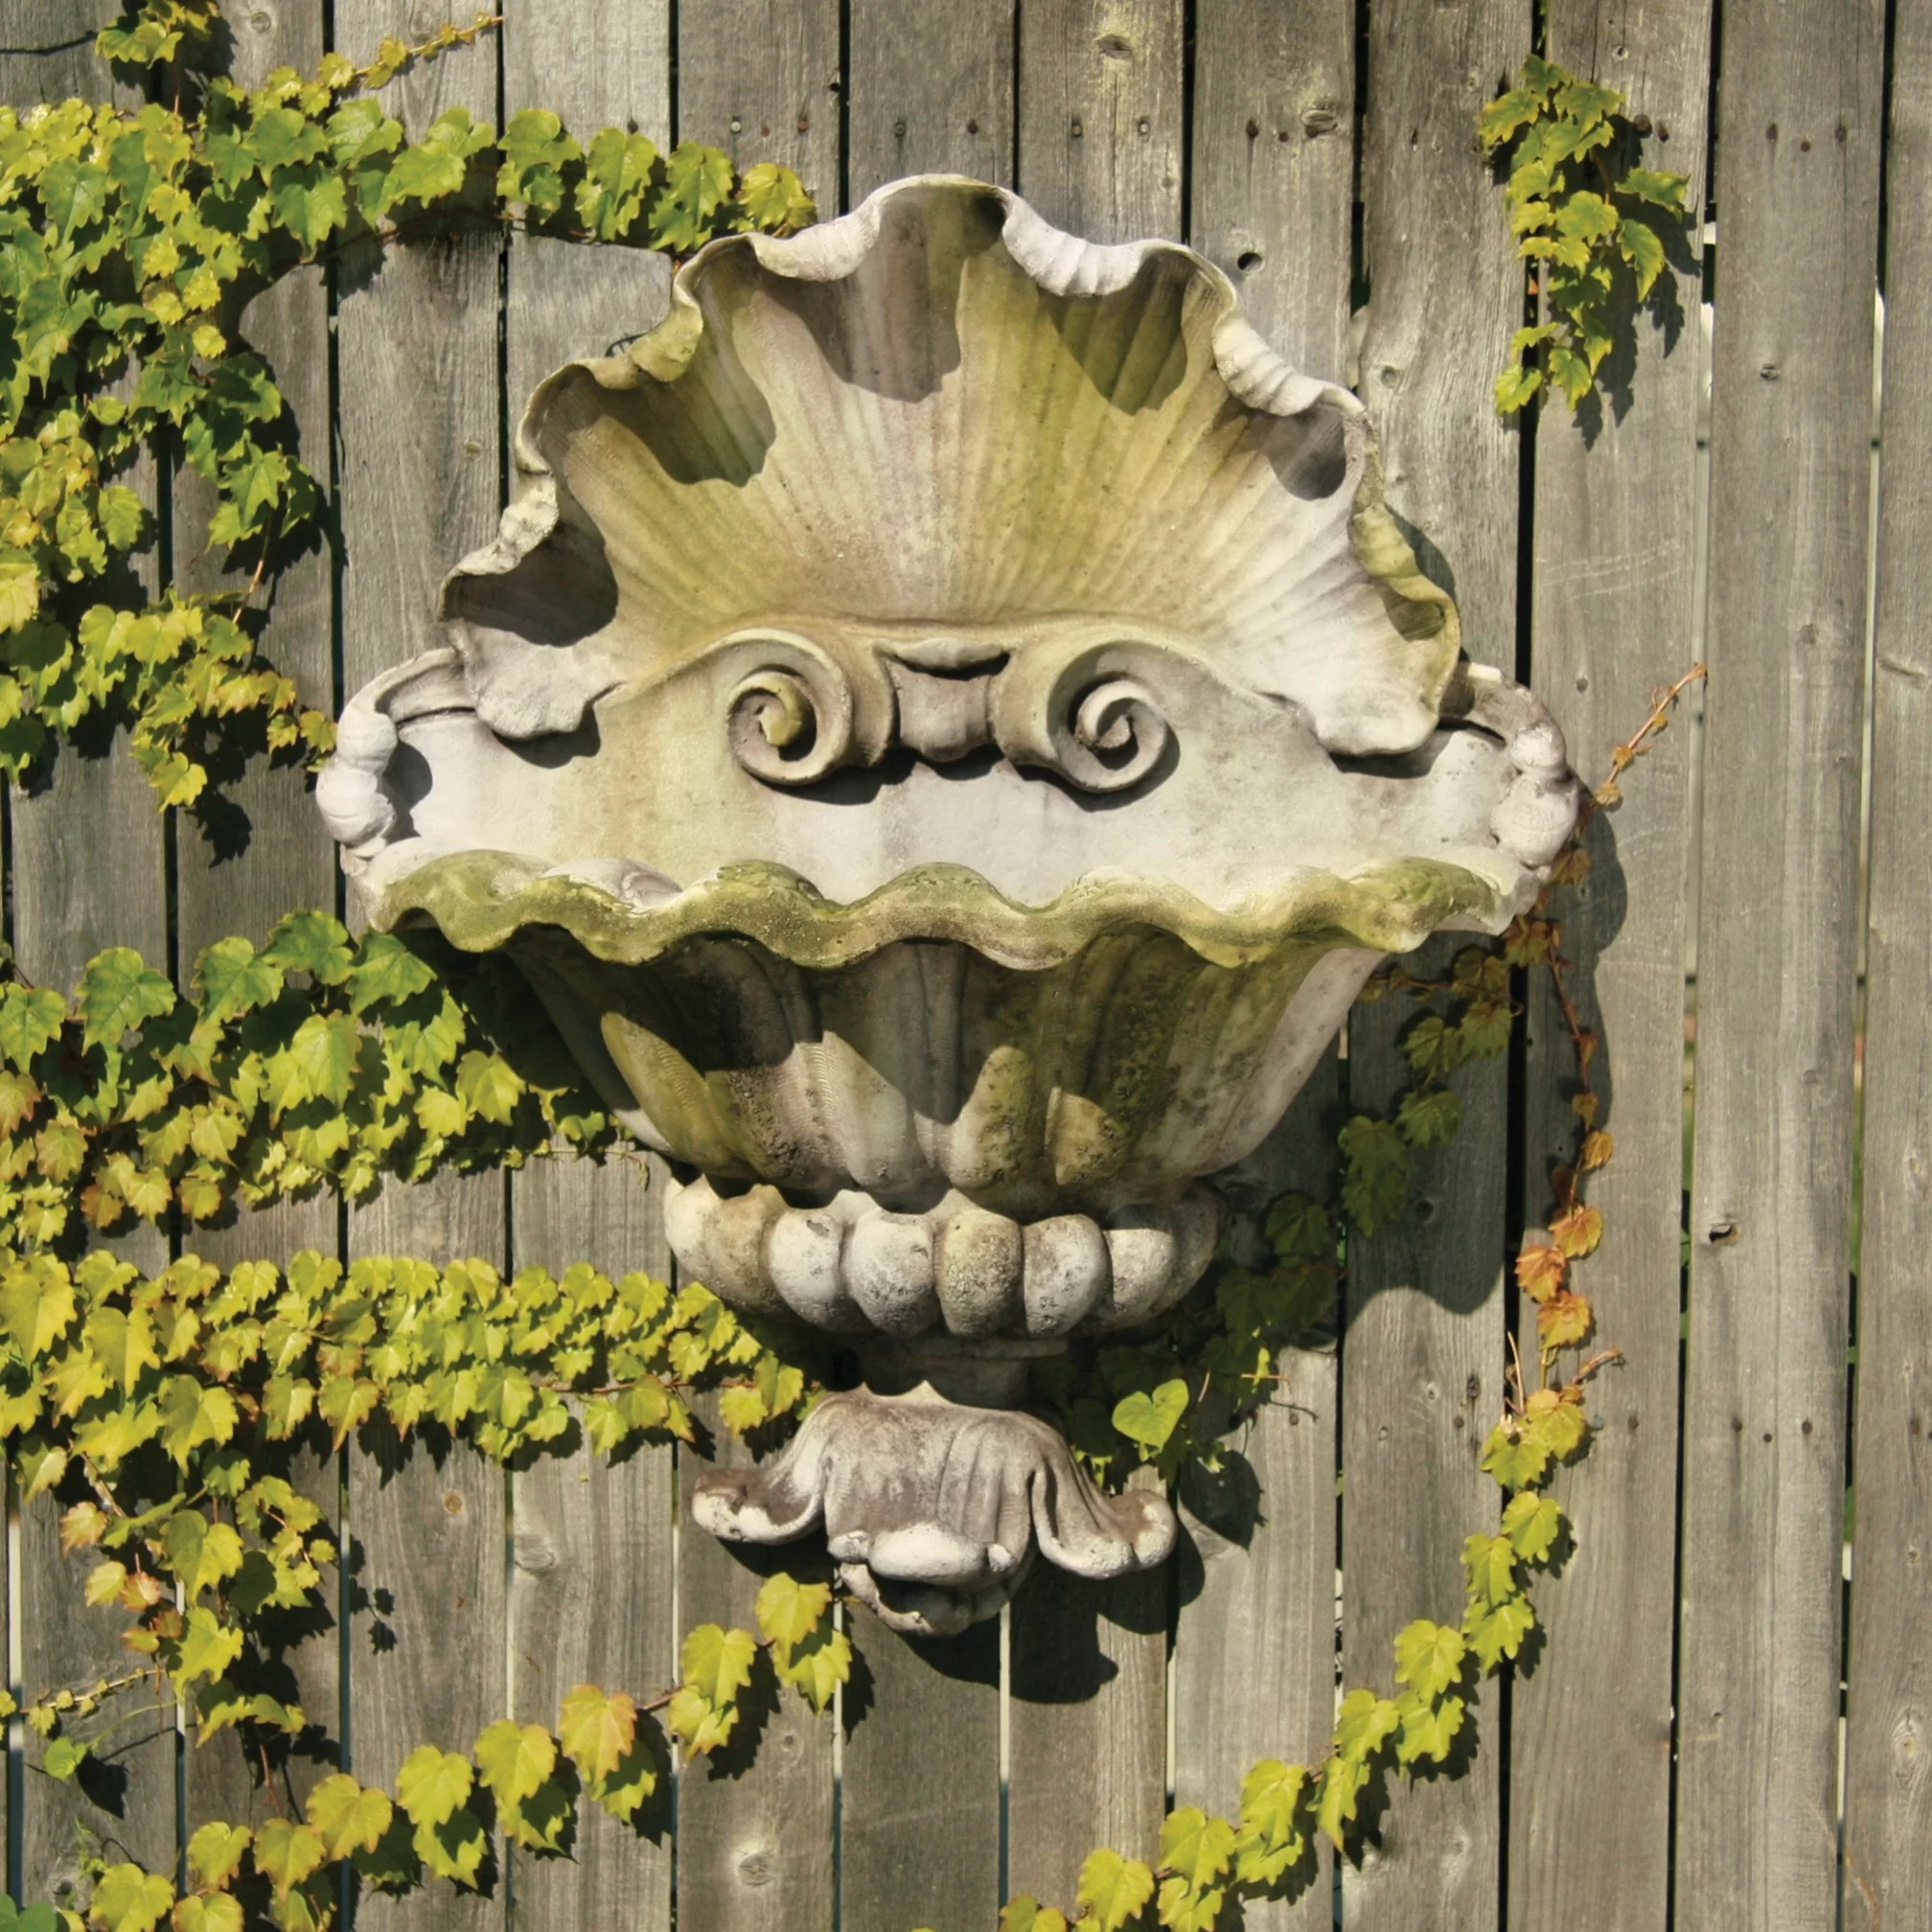 Outdoor Wall Hanging Planters Orlandistatuary Novelty Wall Planter And Reviews Wayfair